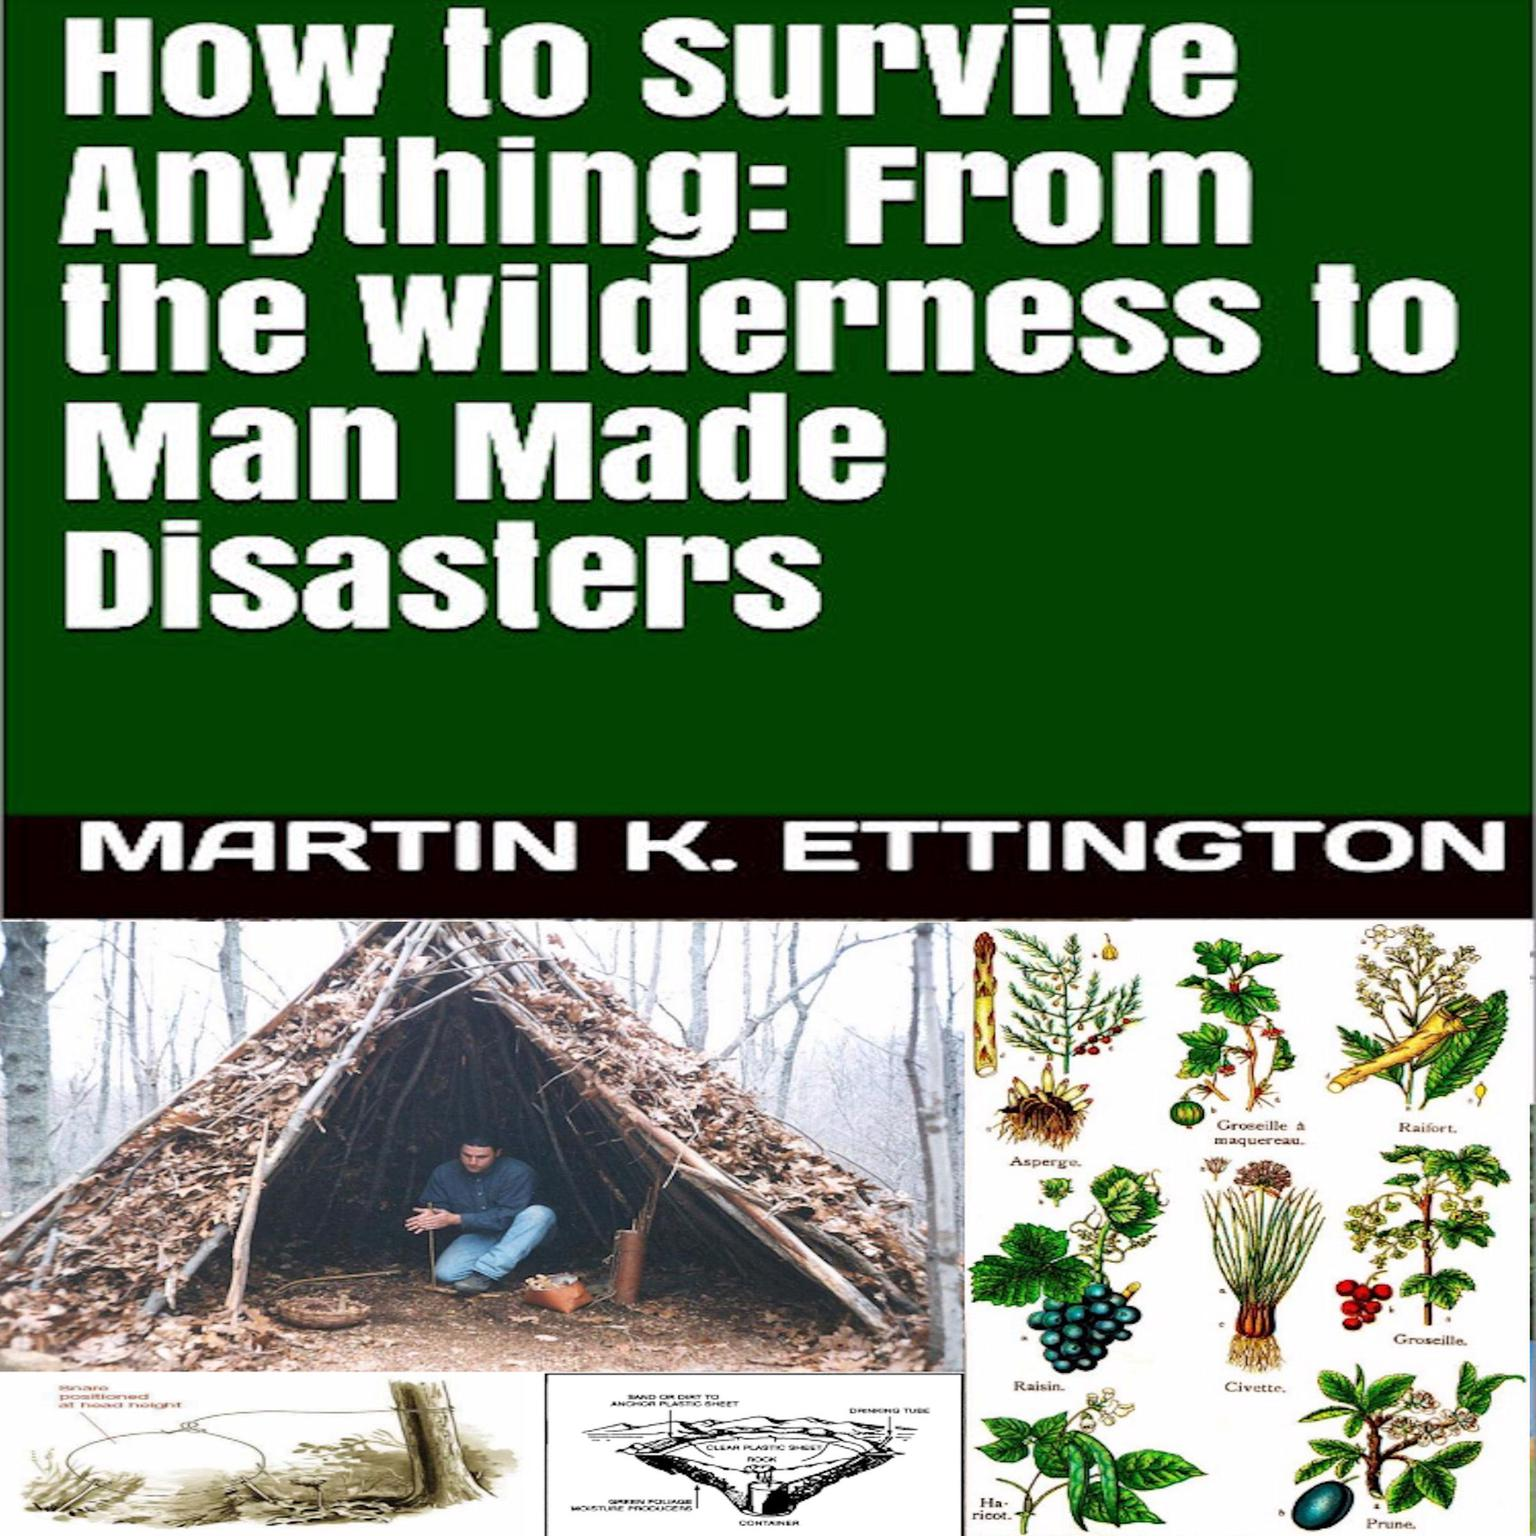 How to Survive Anything: From the Wilderness to Man Made Disasters Audiobook, by Martin K. Ettington